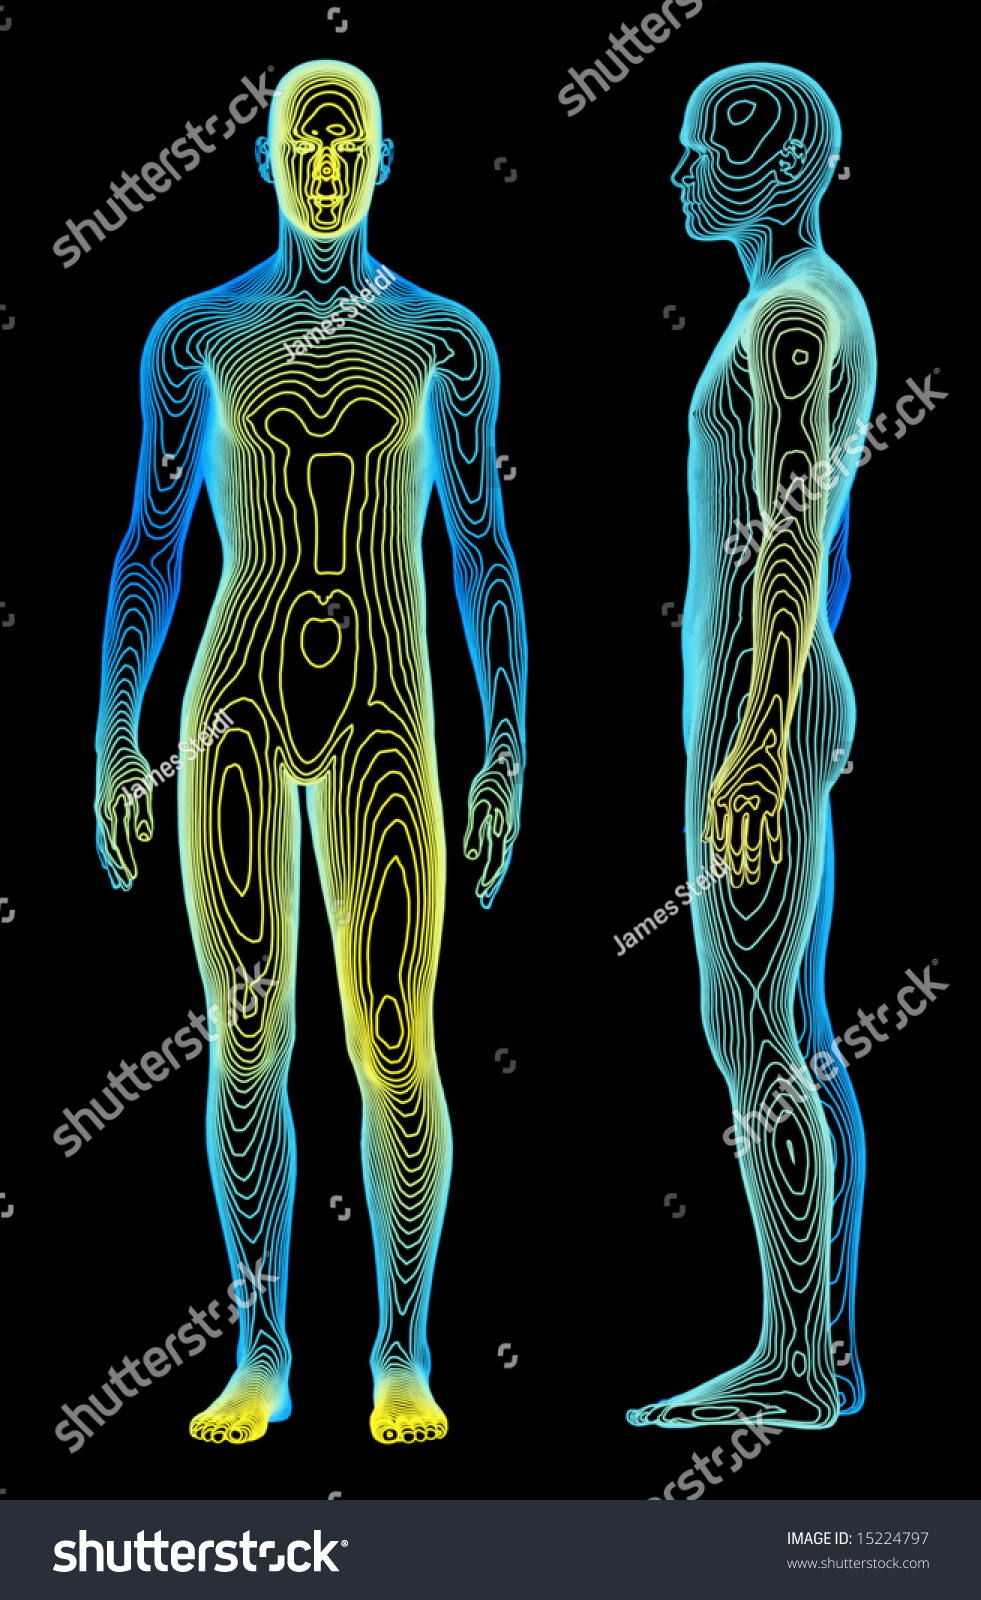 Medical Concept Human Body Stock Illustration 15224797 ...